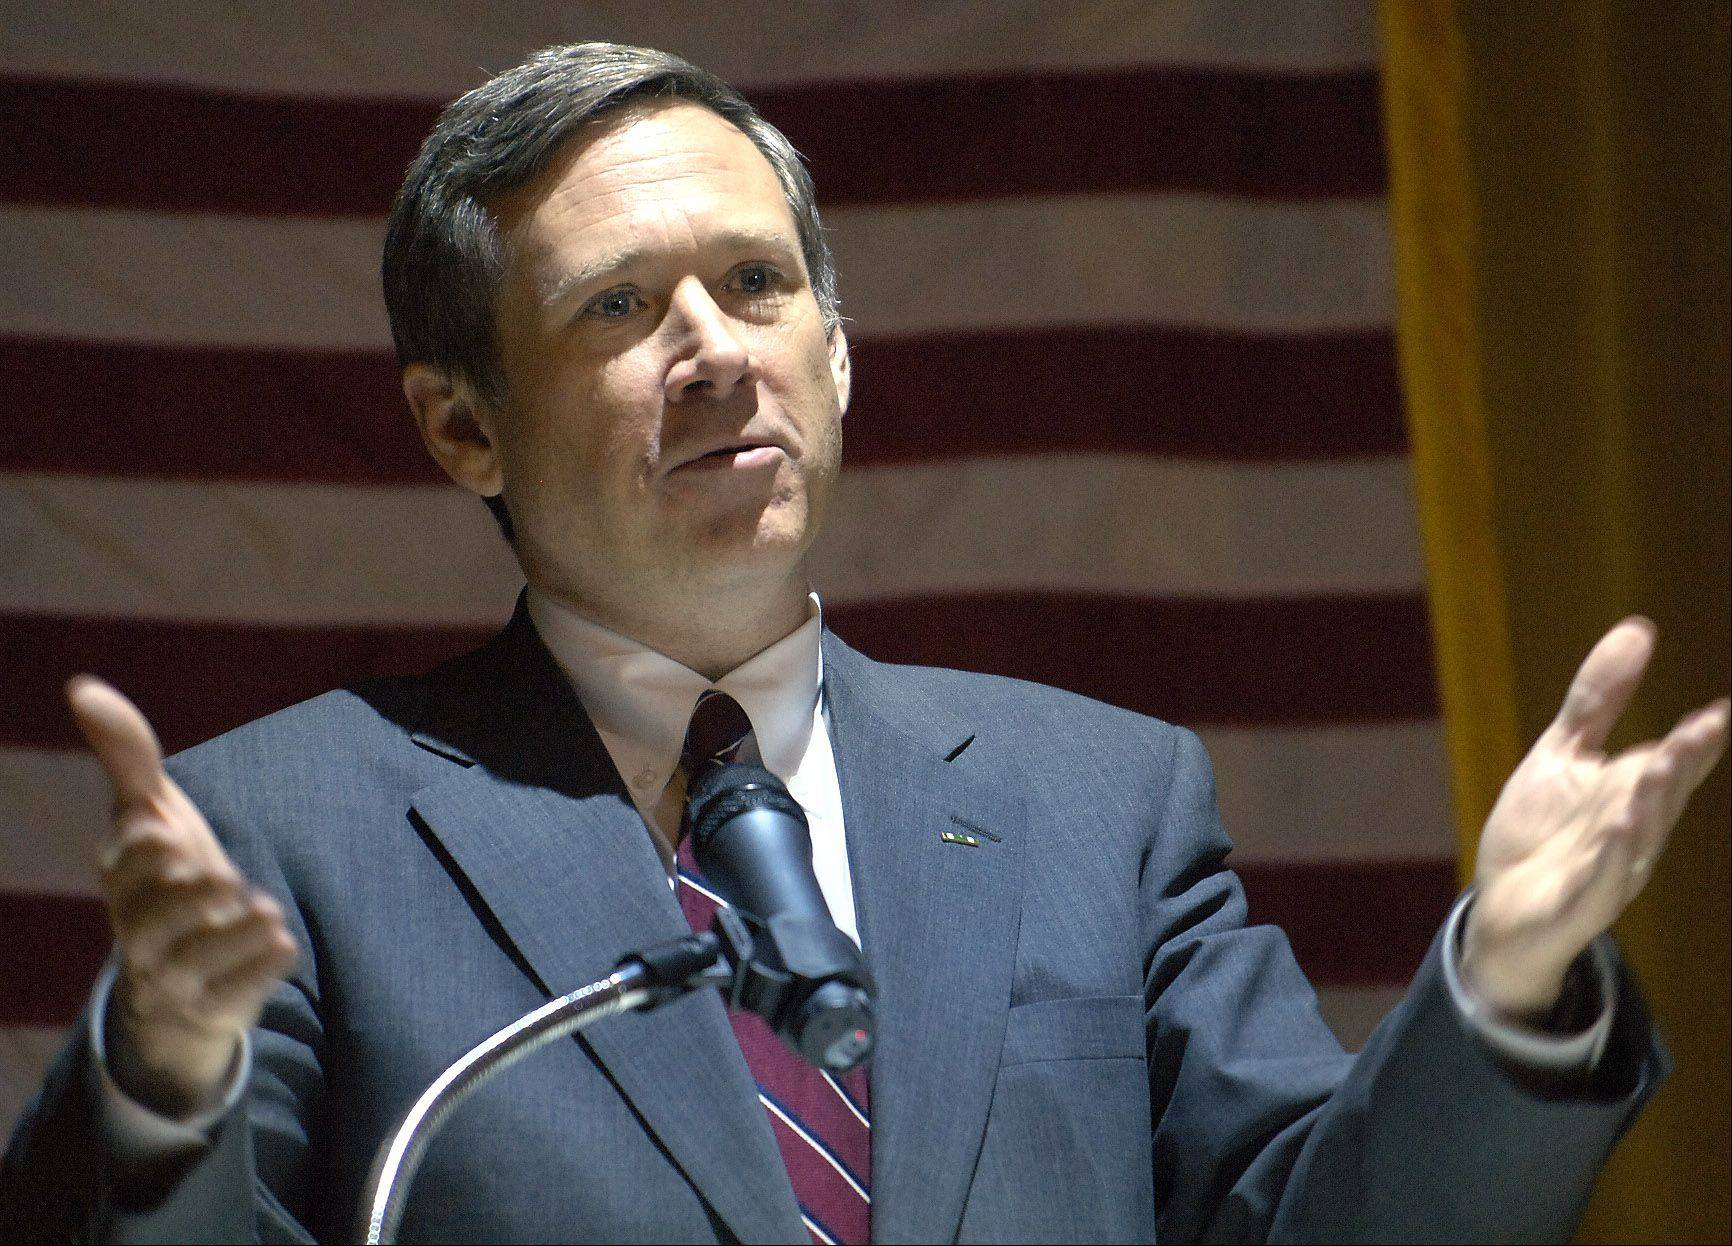 While Republican Sen. Mark Kirk says he is reviewing the immigration reform law coming before the U.S. Senate, Illinois business leaders are urging him to get behind the legislation.